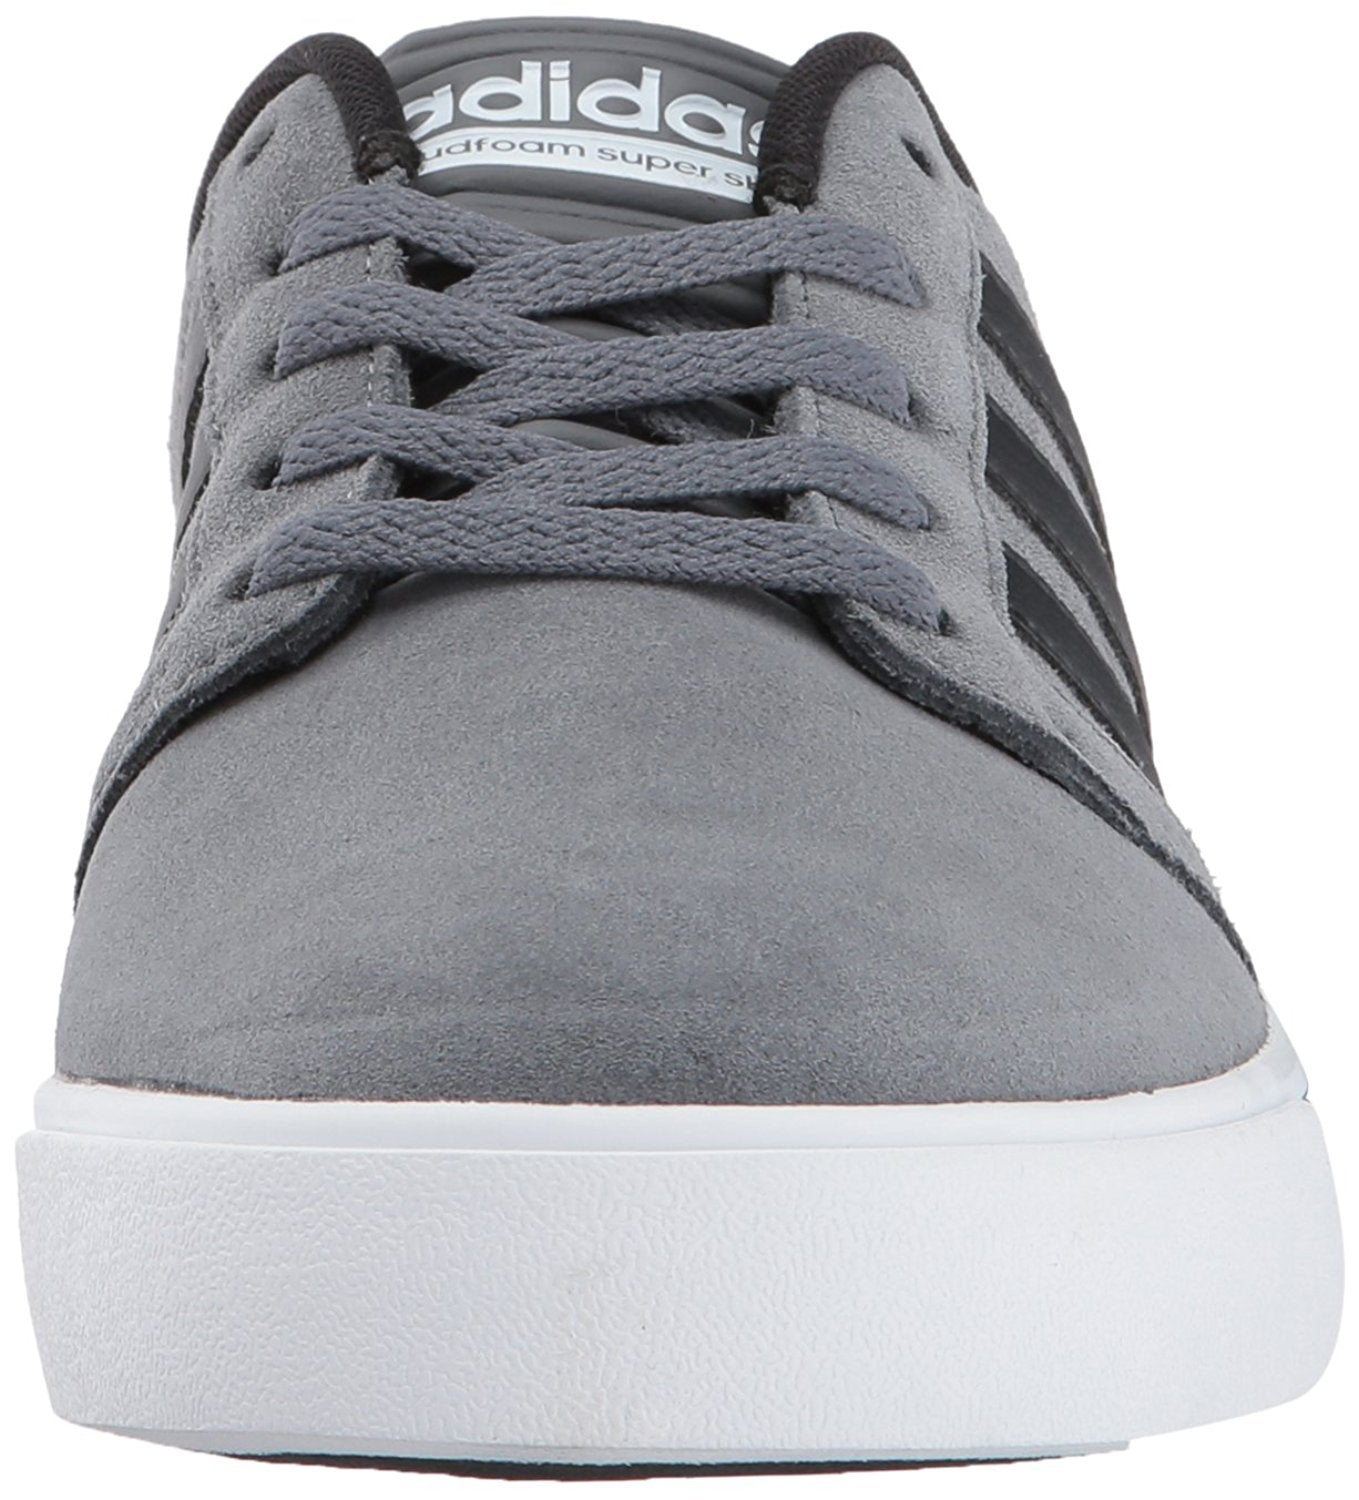 Adidas CG5744 Men's Cloudfoam Superskate Grey Four/Core Black/Timber Sneakers